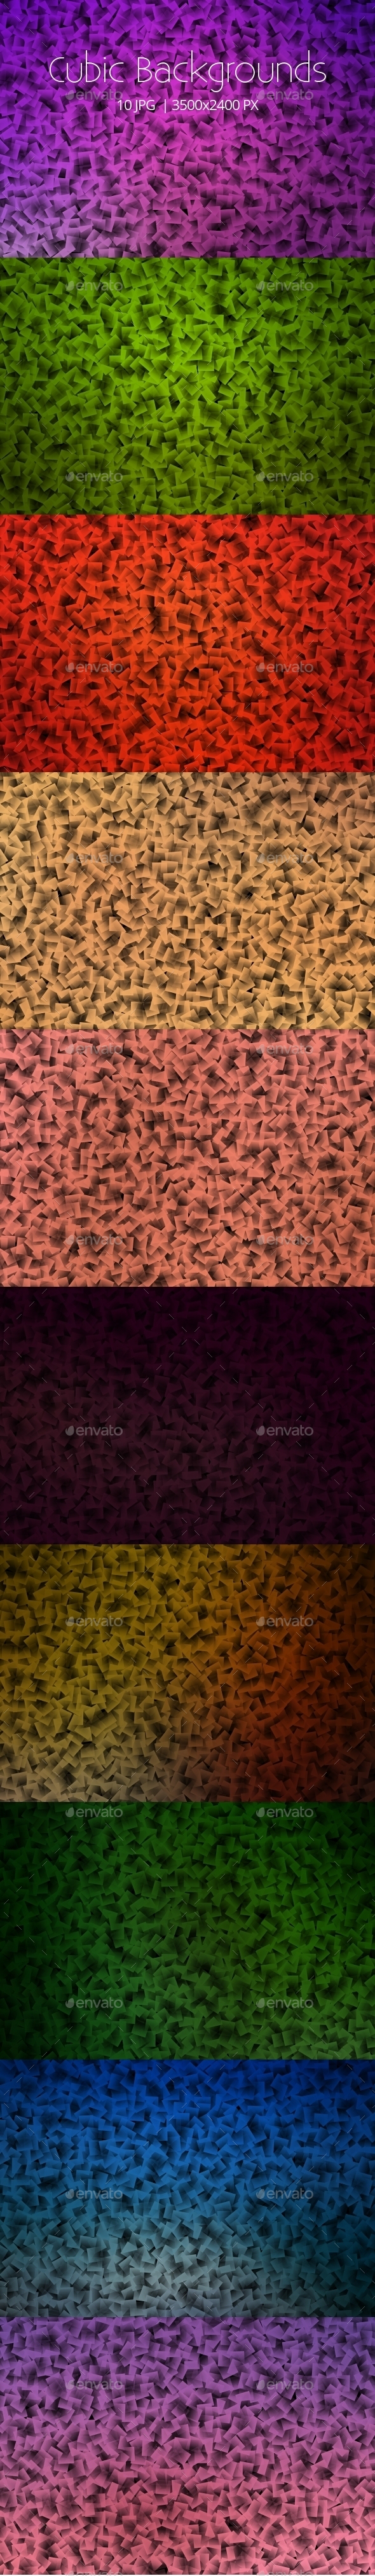 Abstract Cubic Backgrounds - Abstract Backgrounds